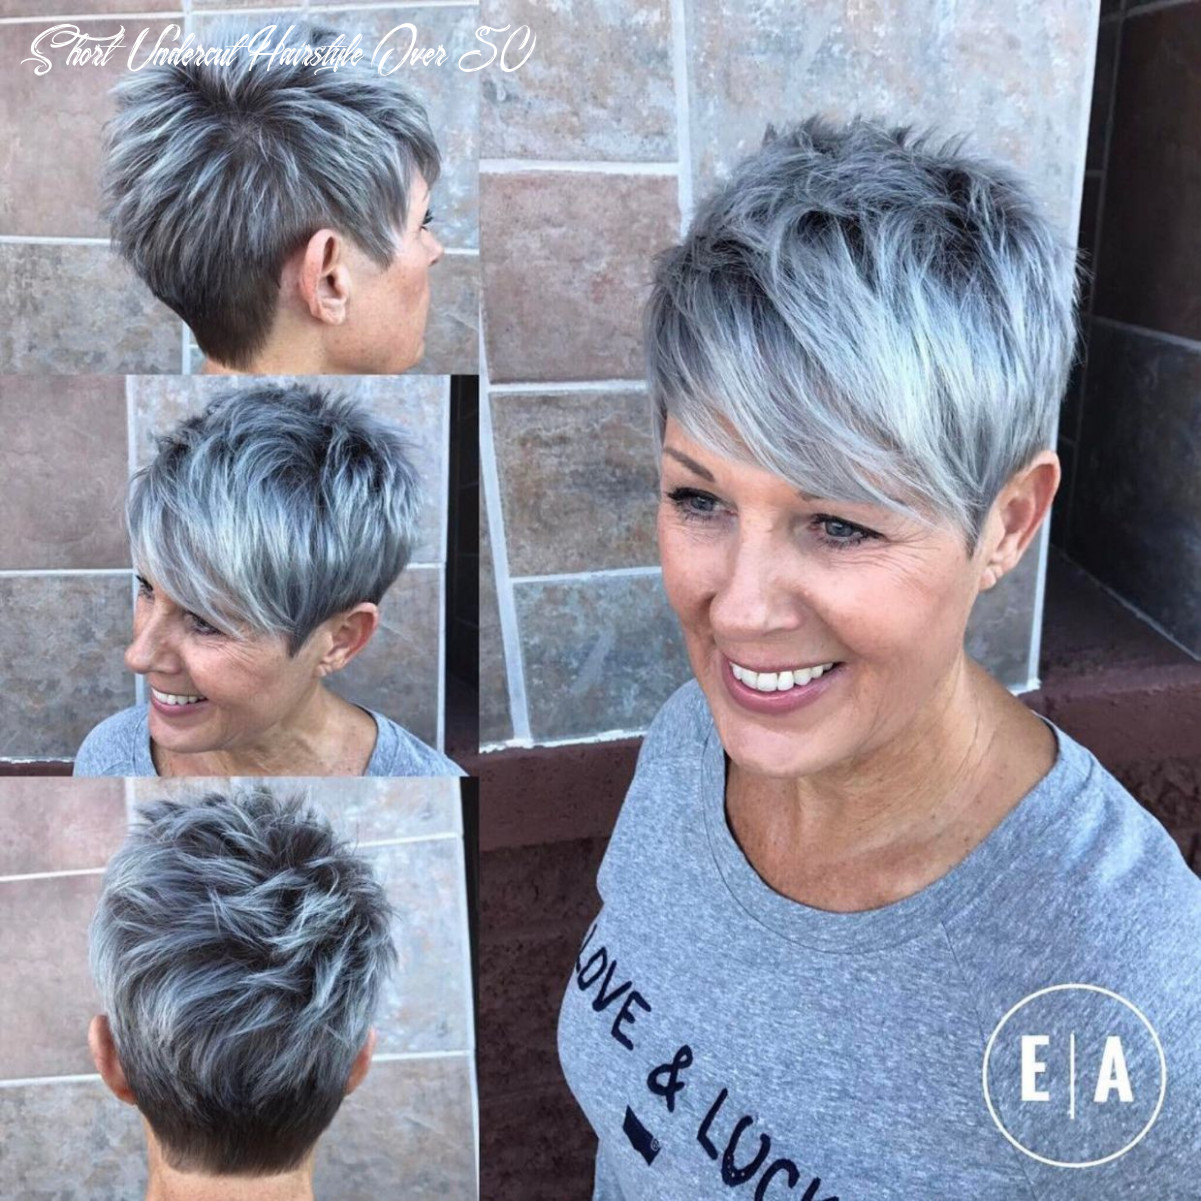 Pin on hair short undercut hairstyle over 50